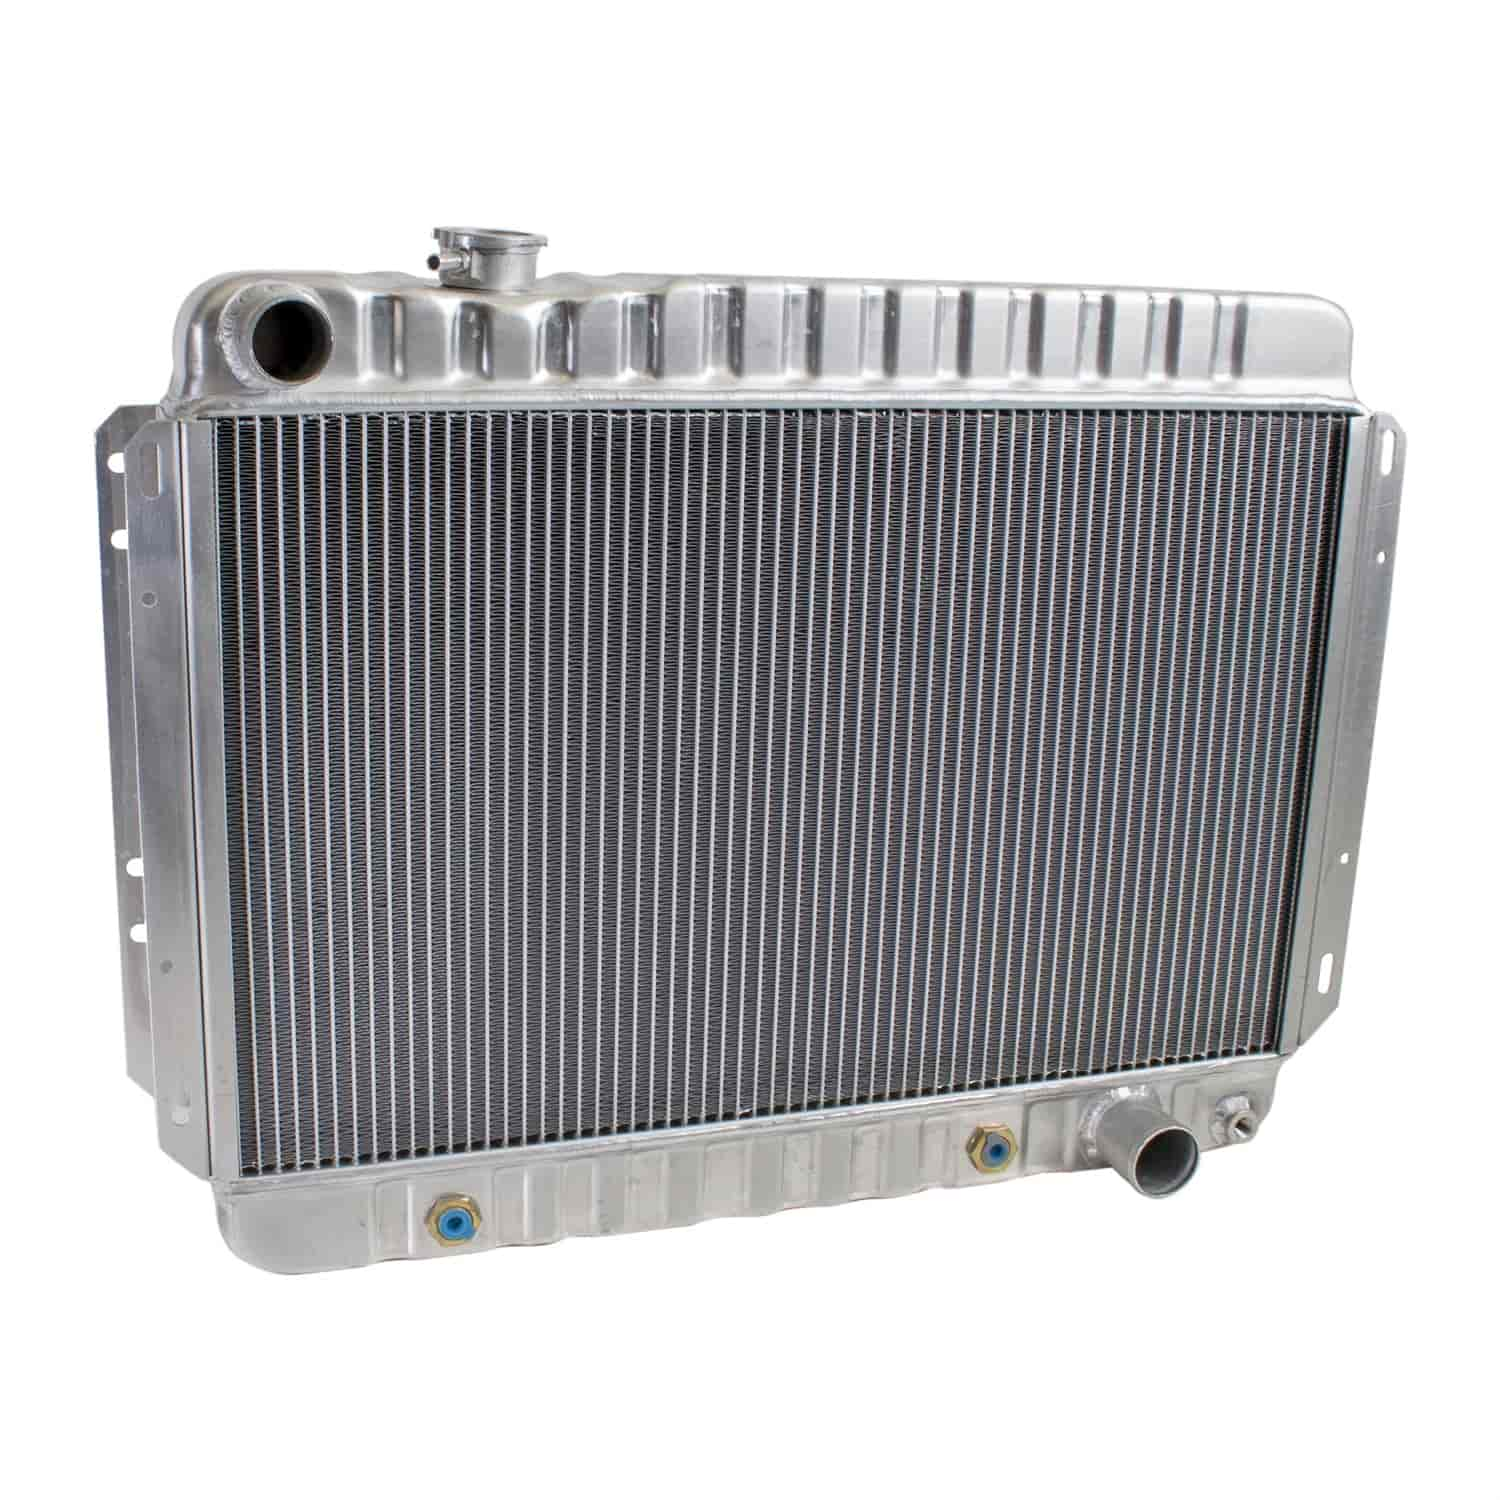 Griffin Radiators 6-70054